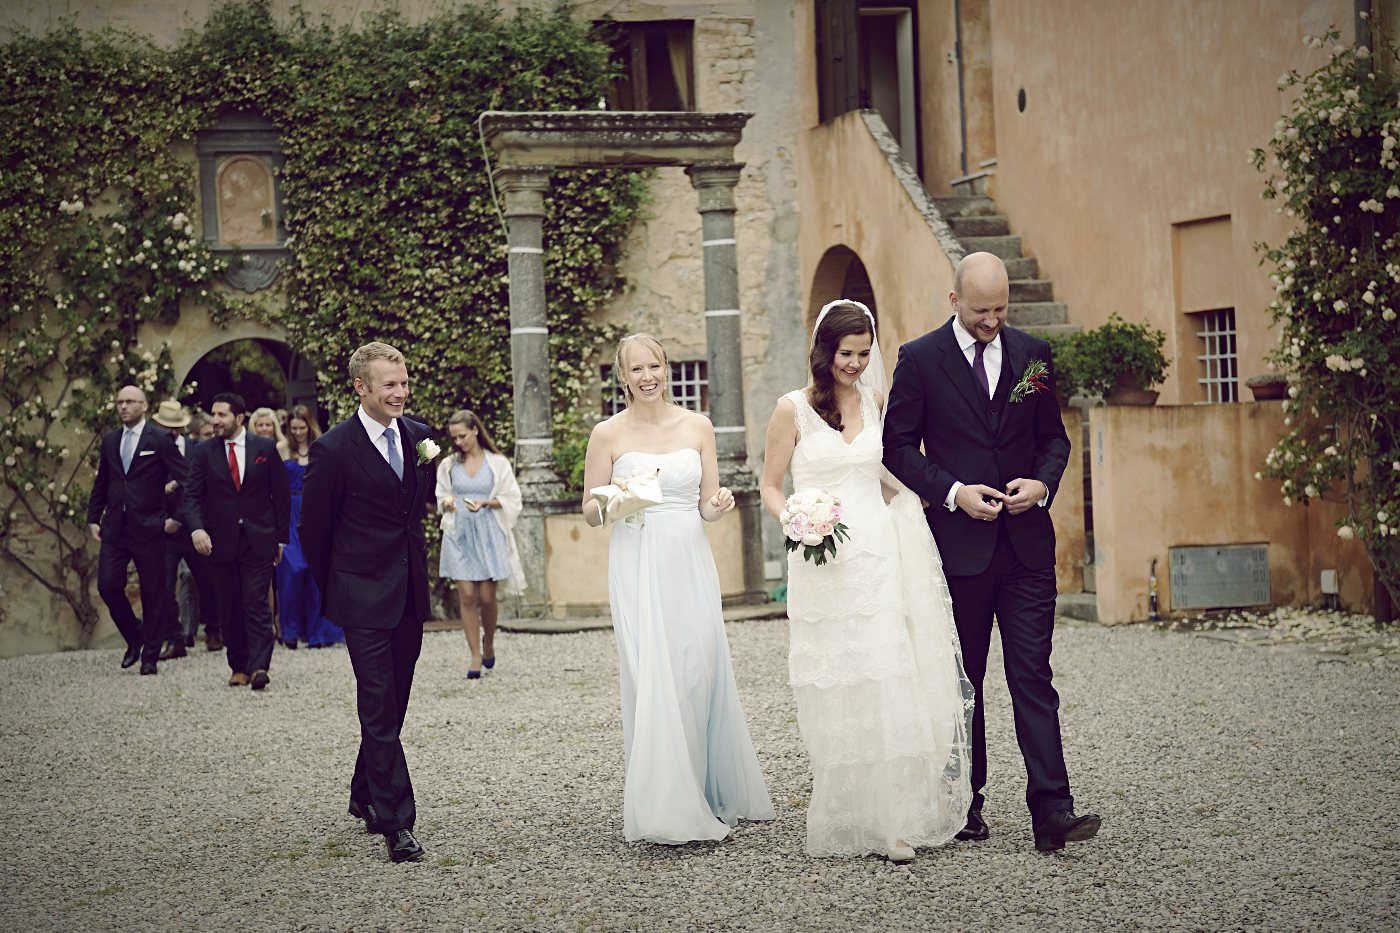 wedding photo siena_11.jpg